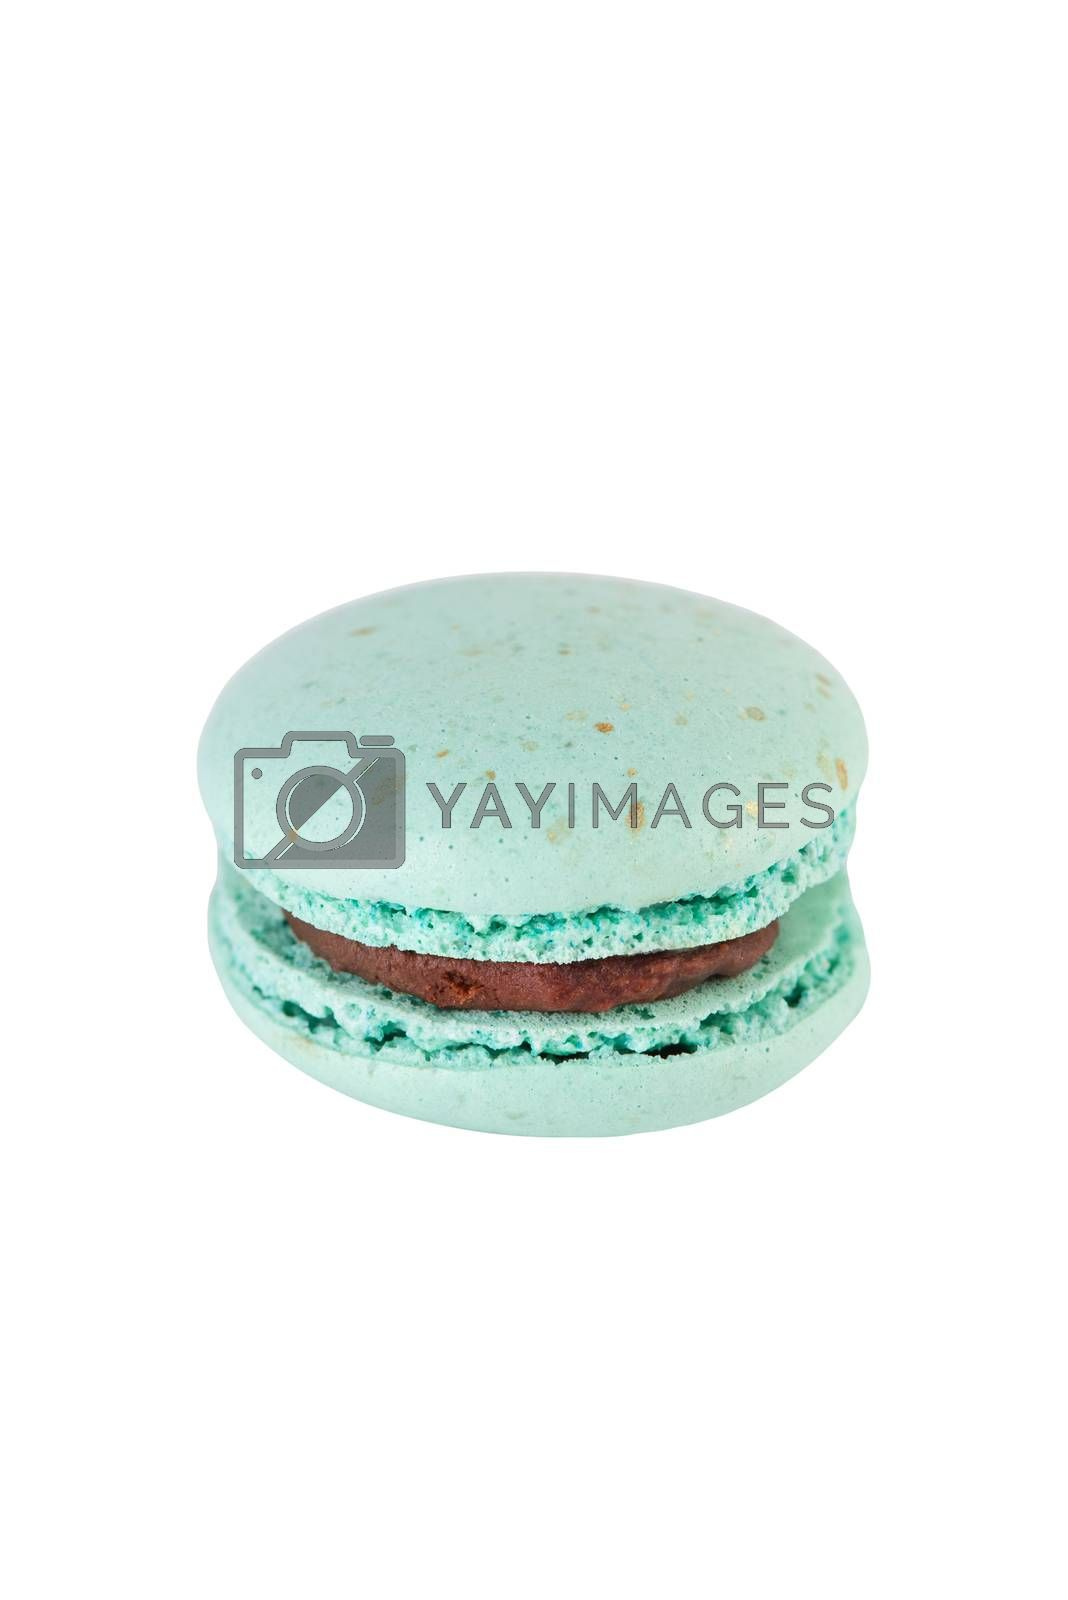 French Macaroon Cookie Isolated on White Background. Close Up Studio Photo.